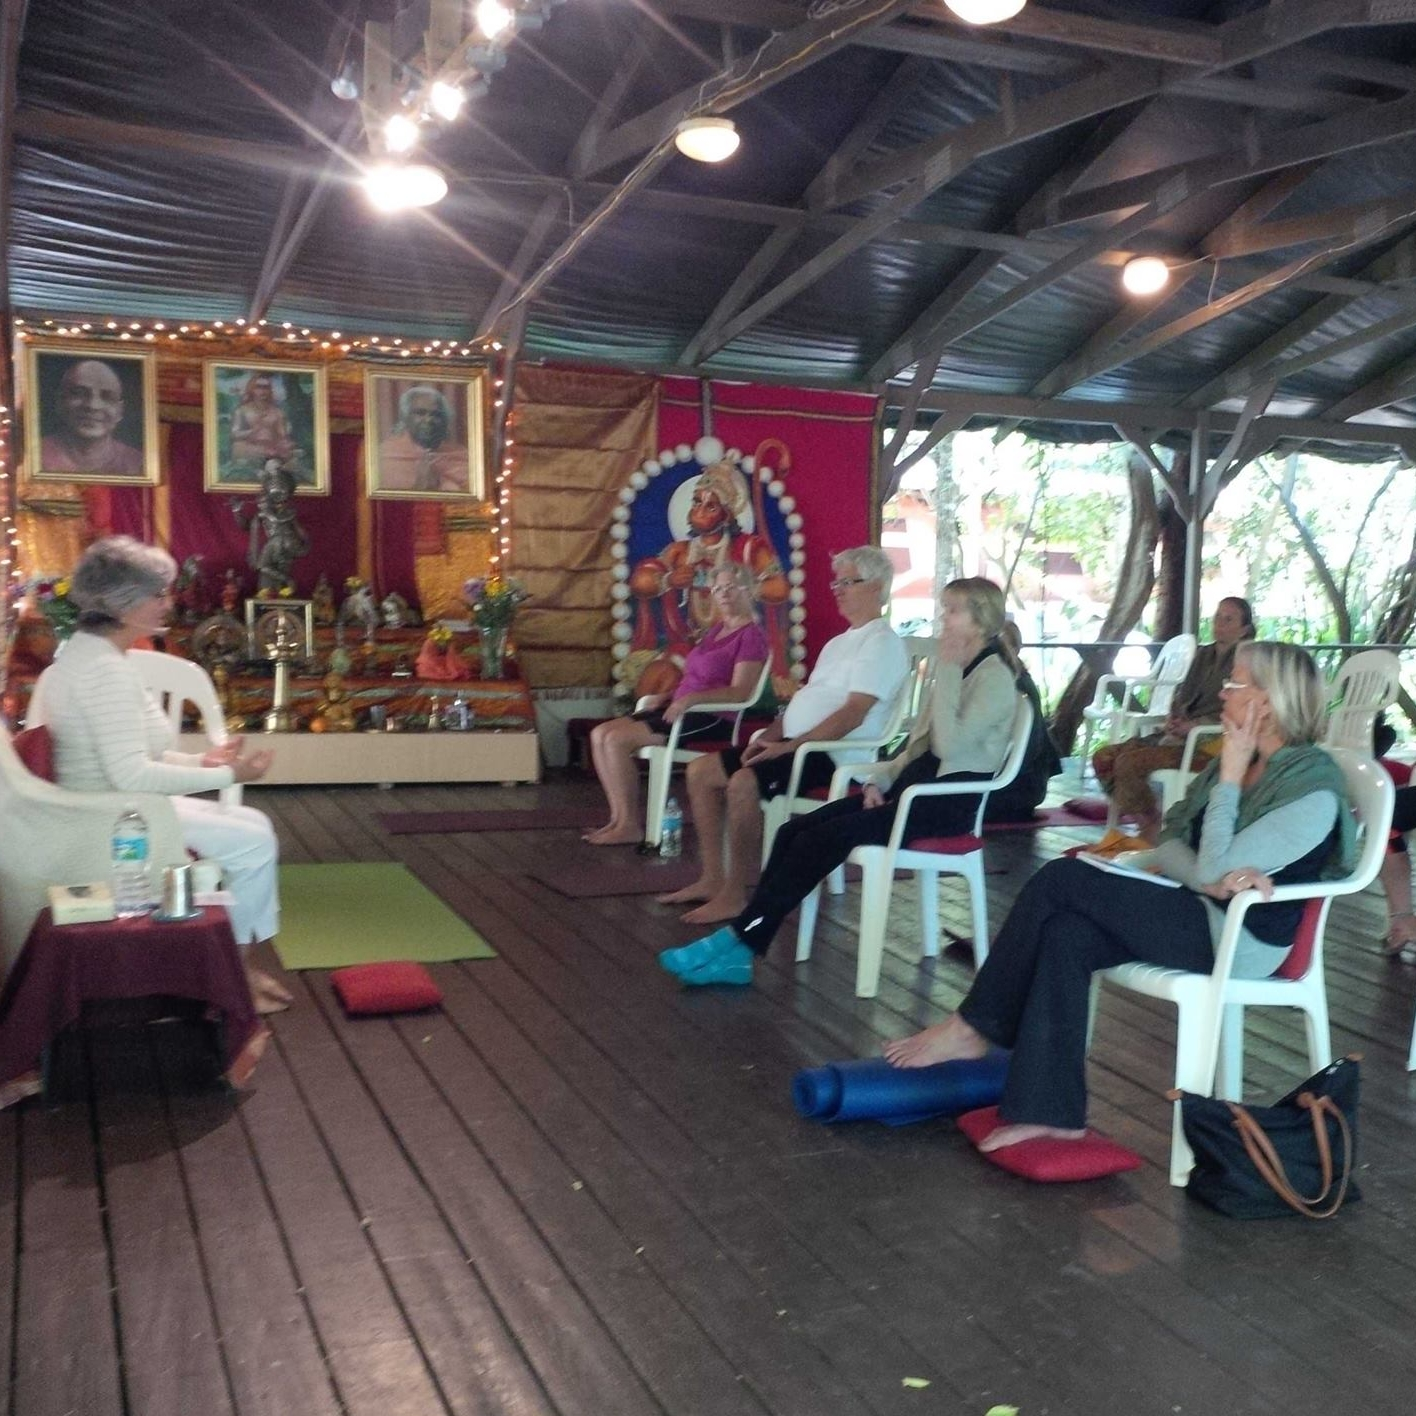 Professional Training   Beata offers professional training and courses for Osteoporosis Prevention and Treatment at the Sivananda Ashram Yoga Retreat in the Bahamas and at other locations around the world.